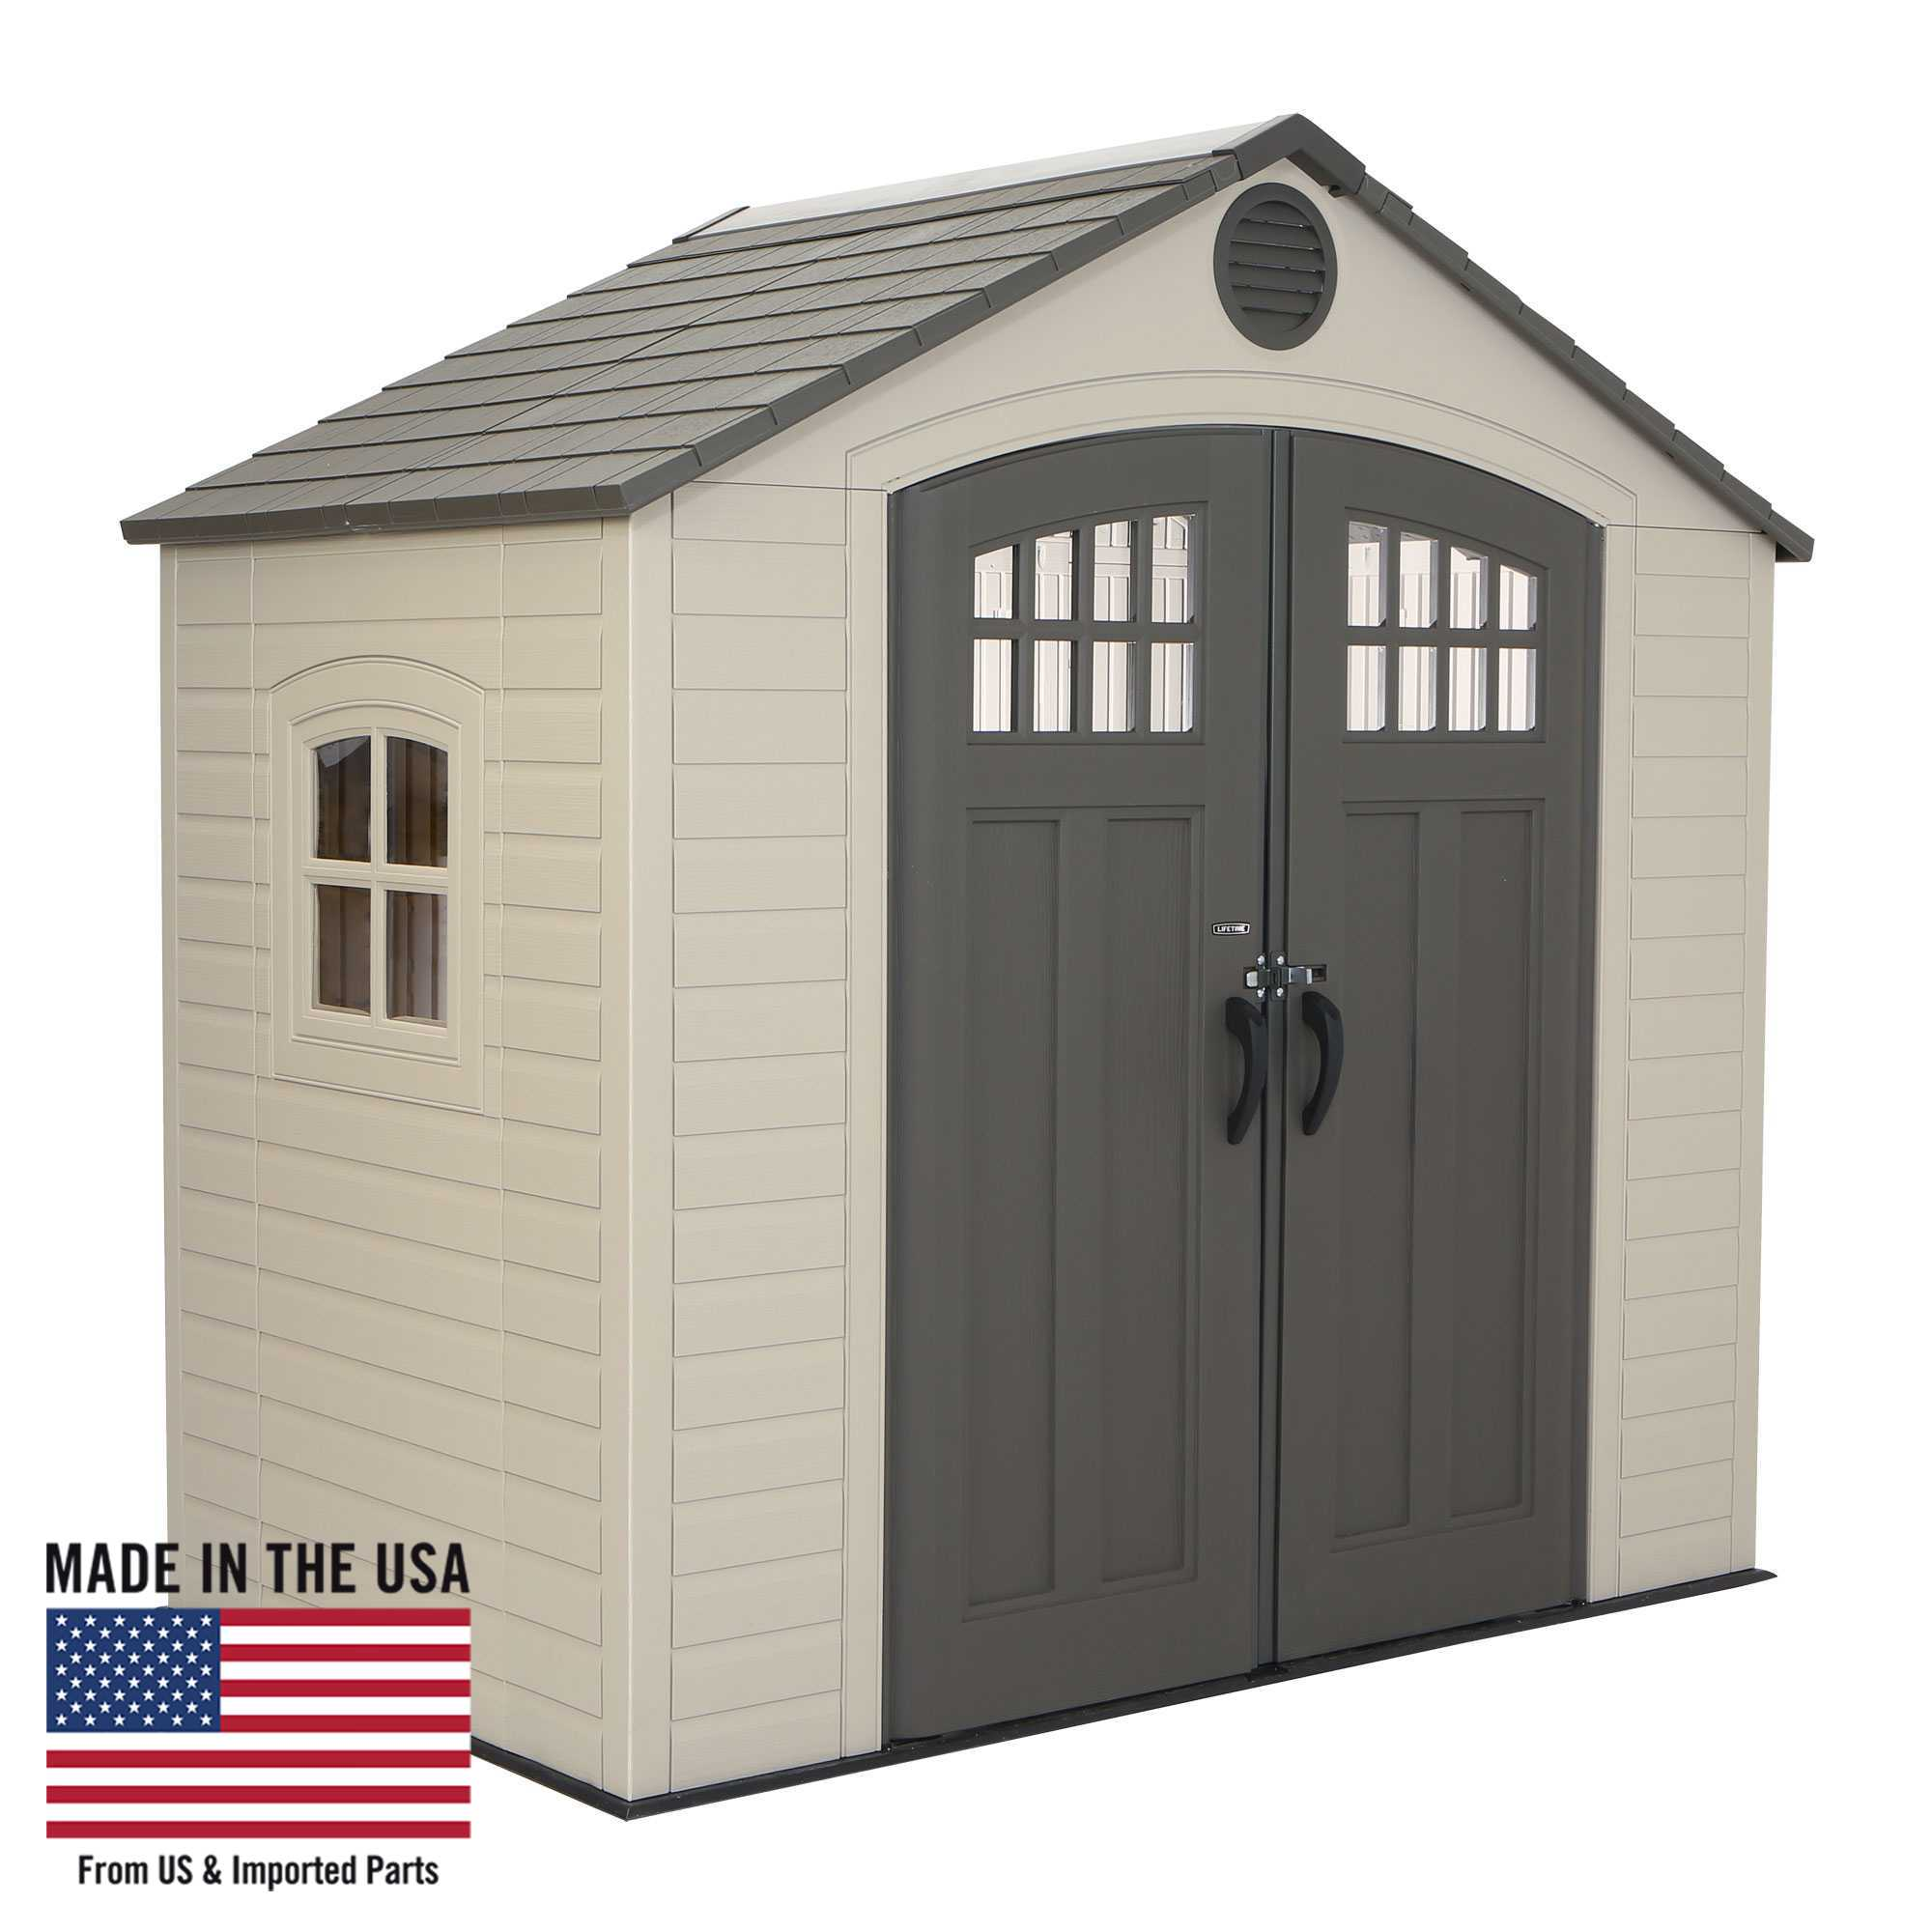 8' x 5' Storage Shed (1 Window)